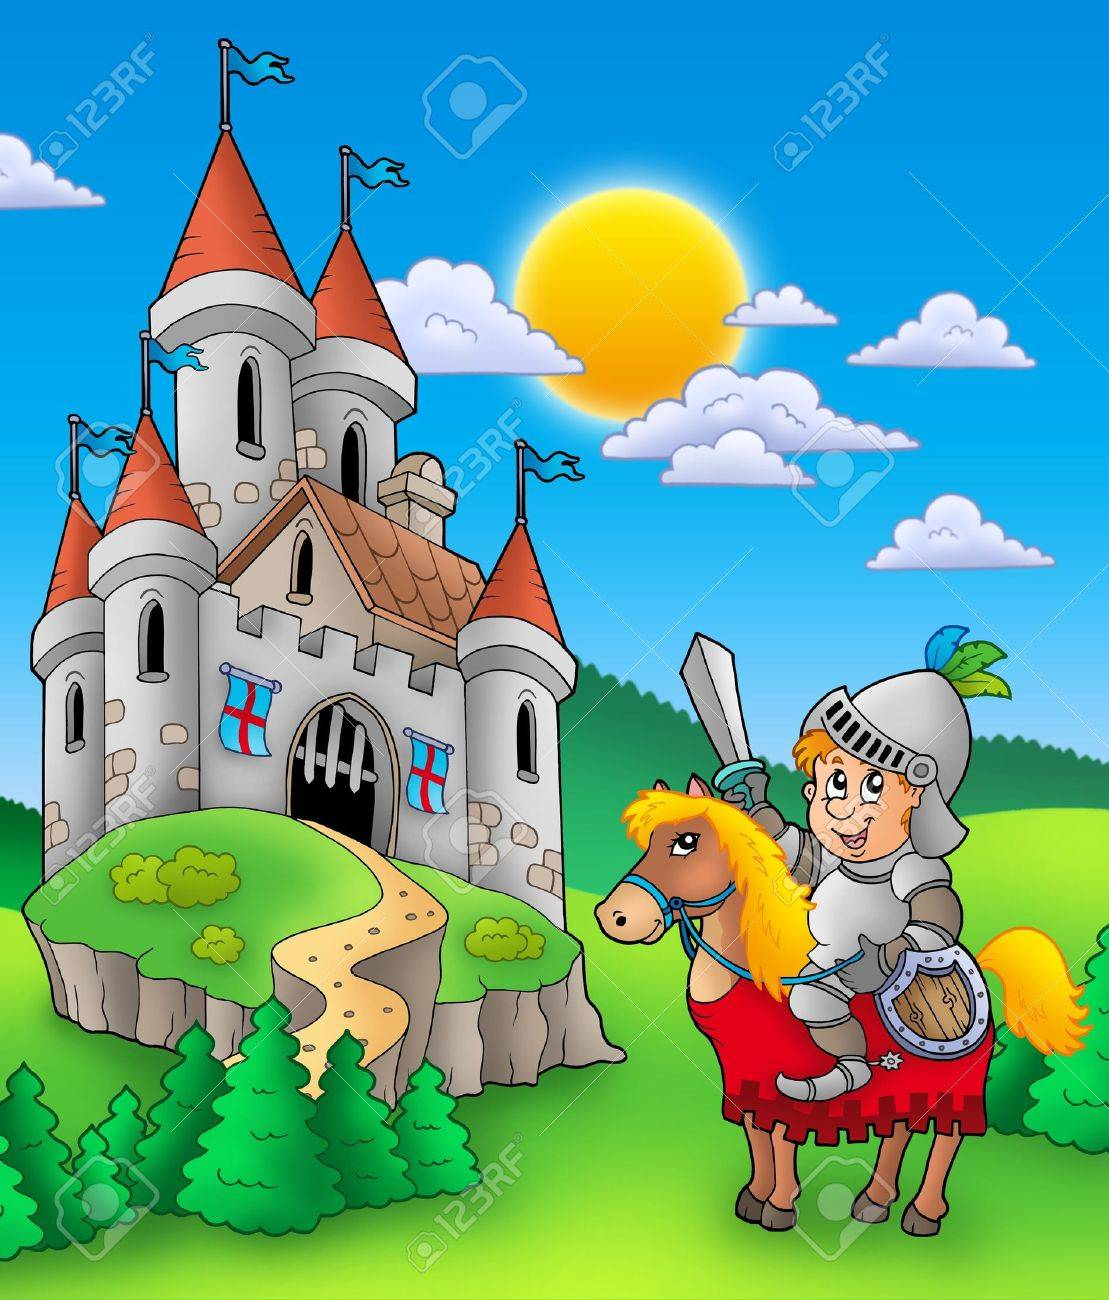 Knight on horse with castle - color illustration. Stock Illustration - 6860805